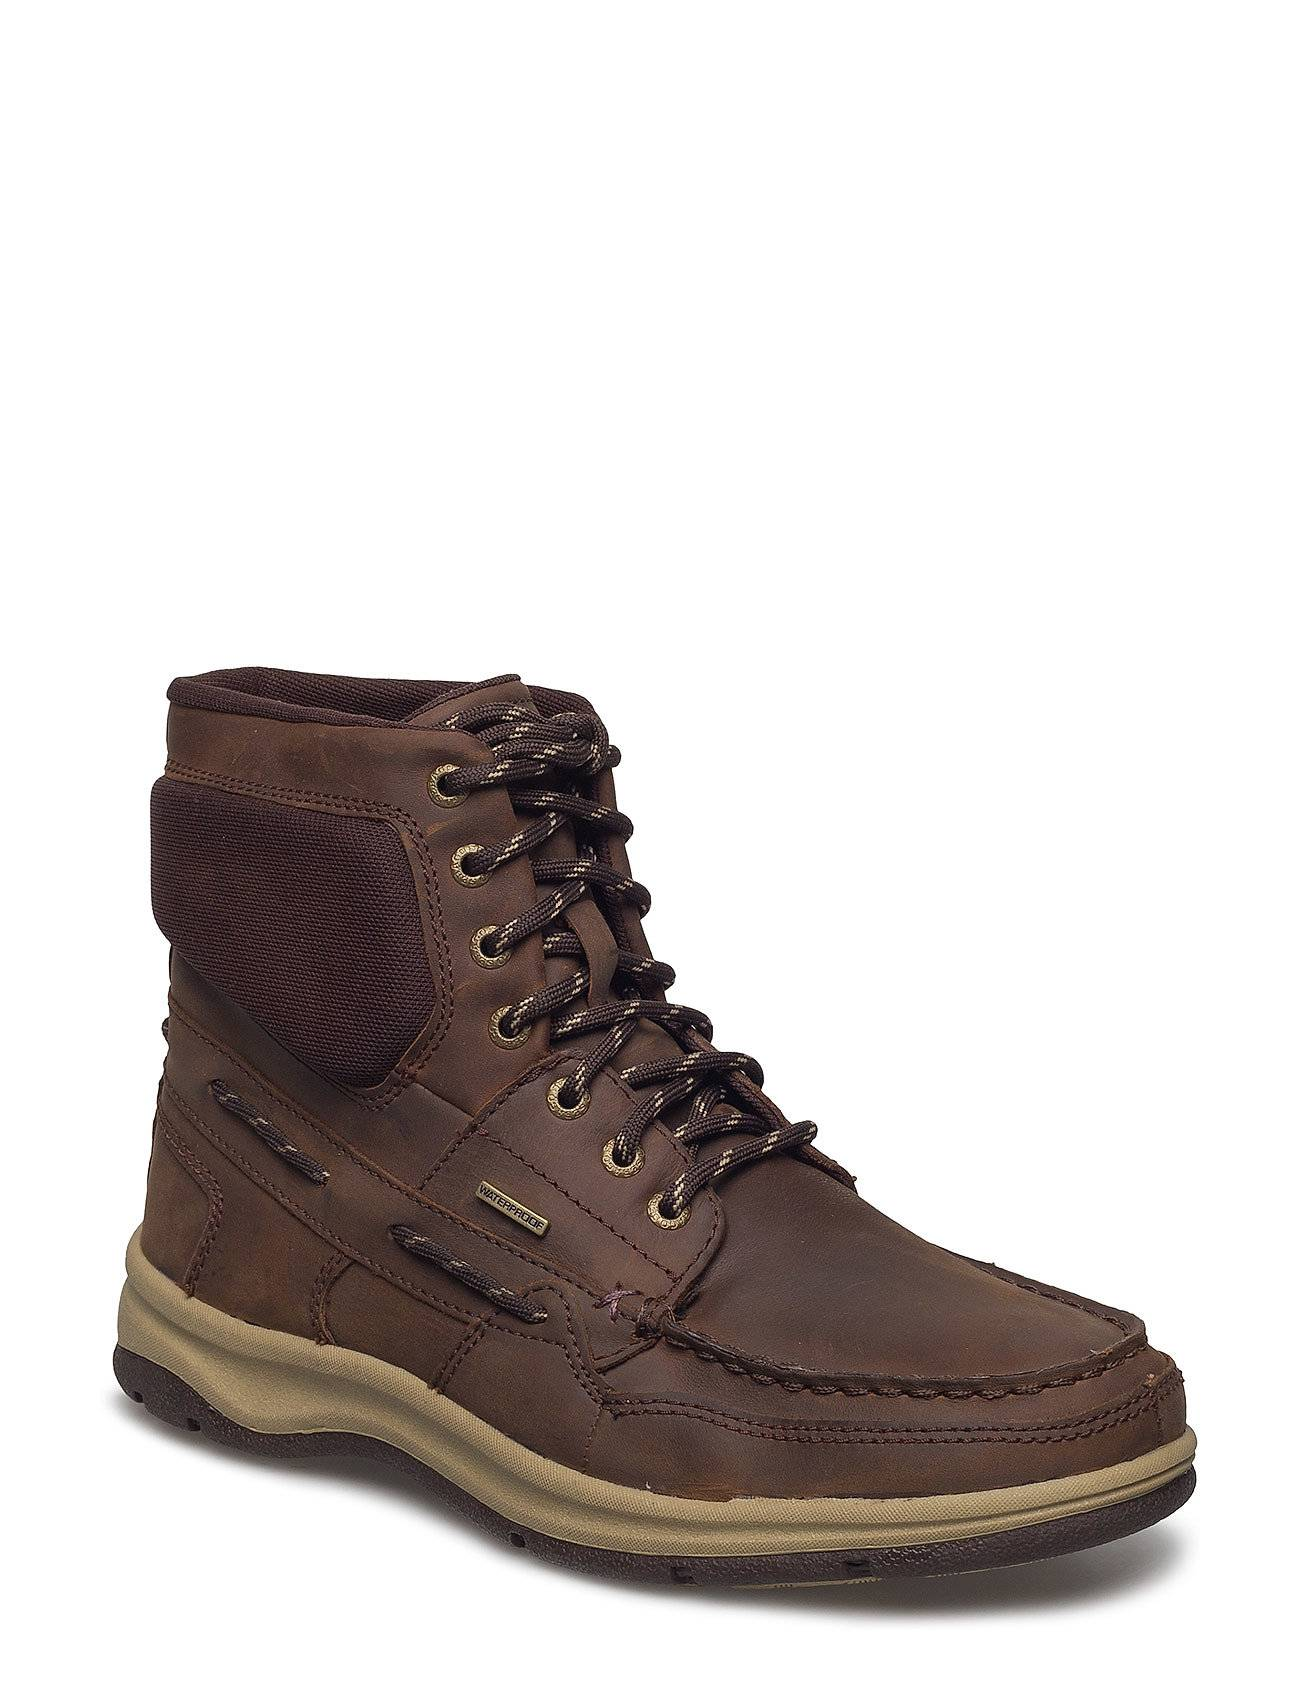 Sebago Brice Mid Boot Wp